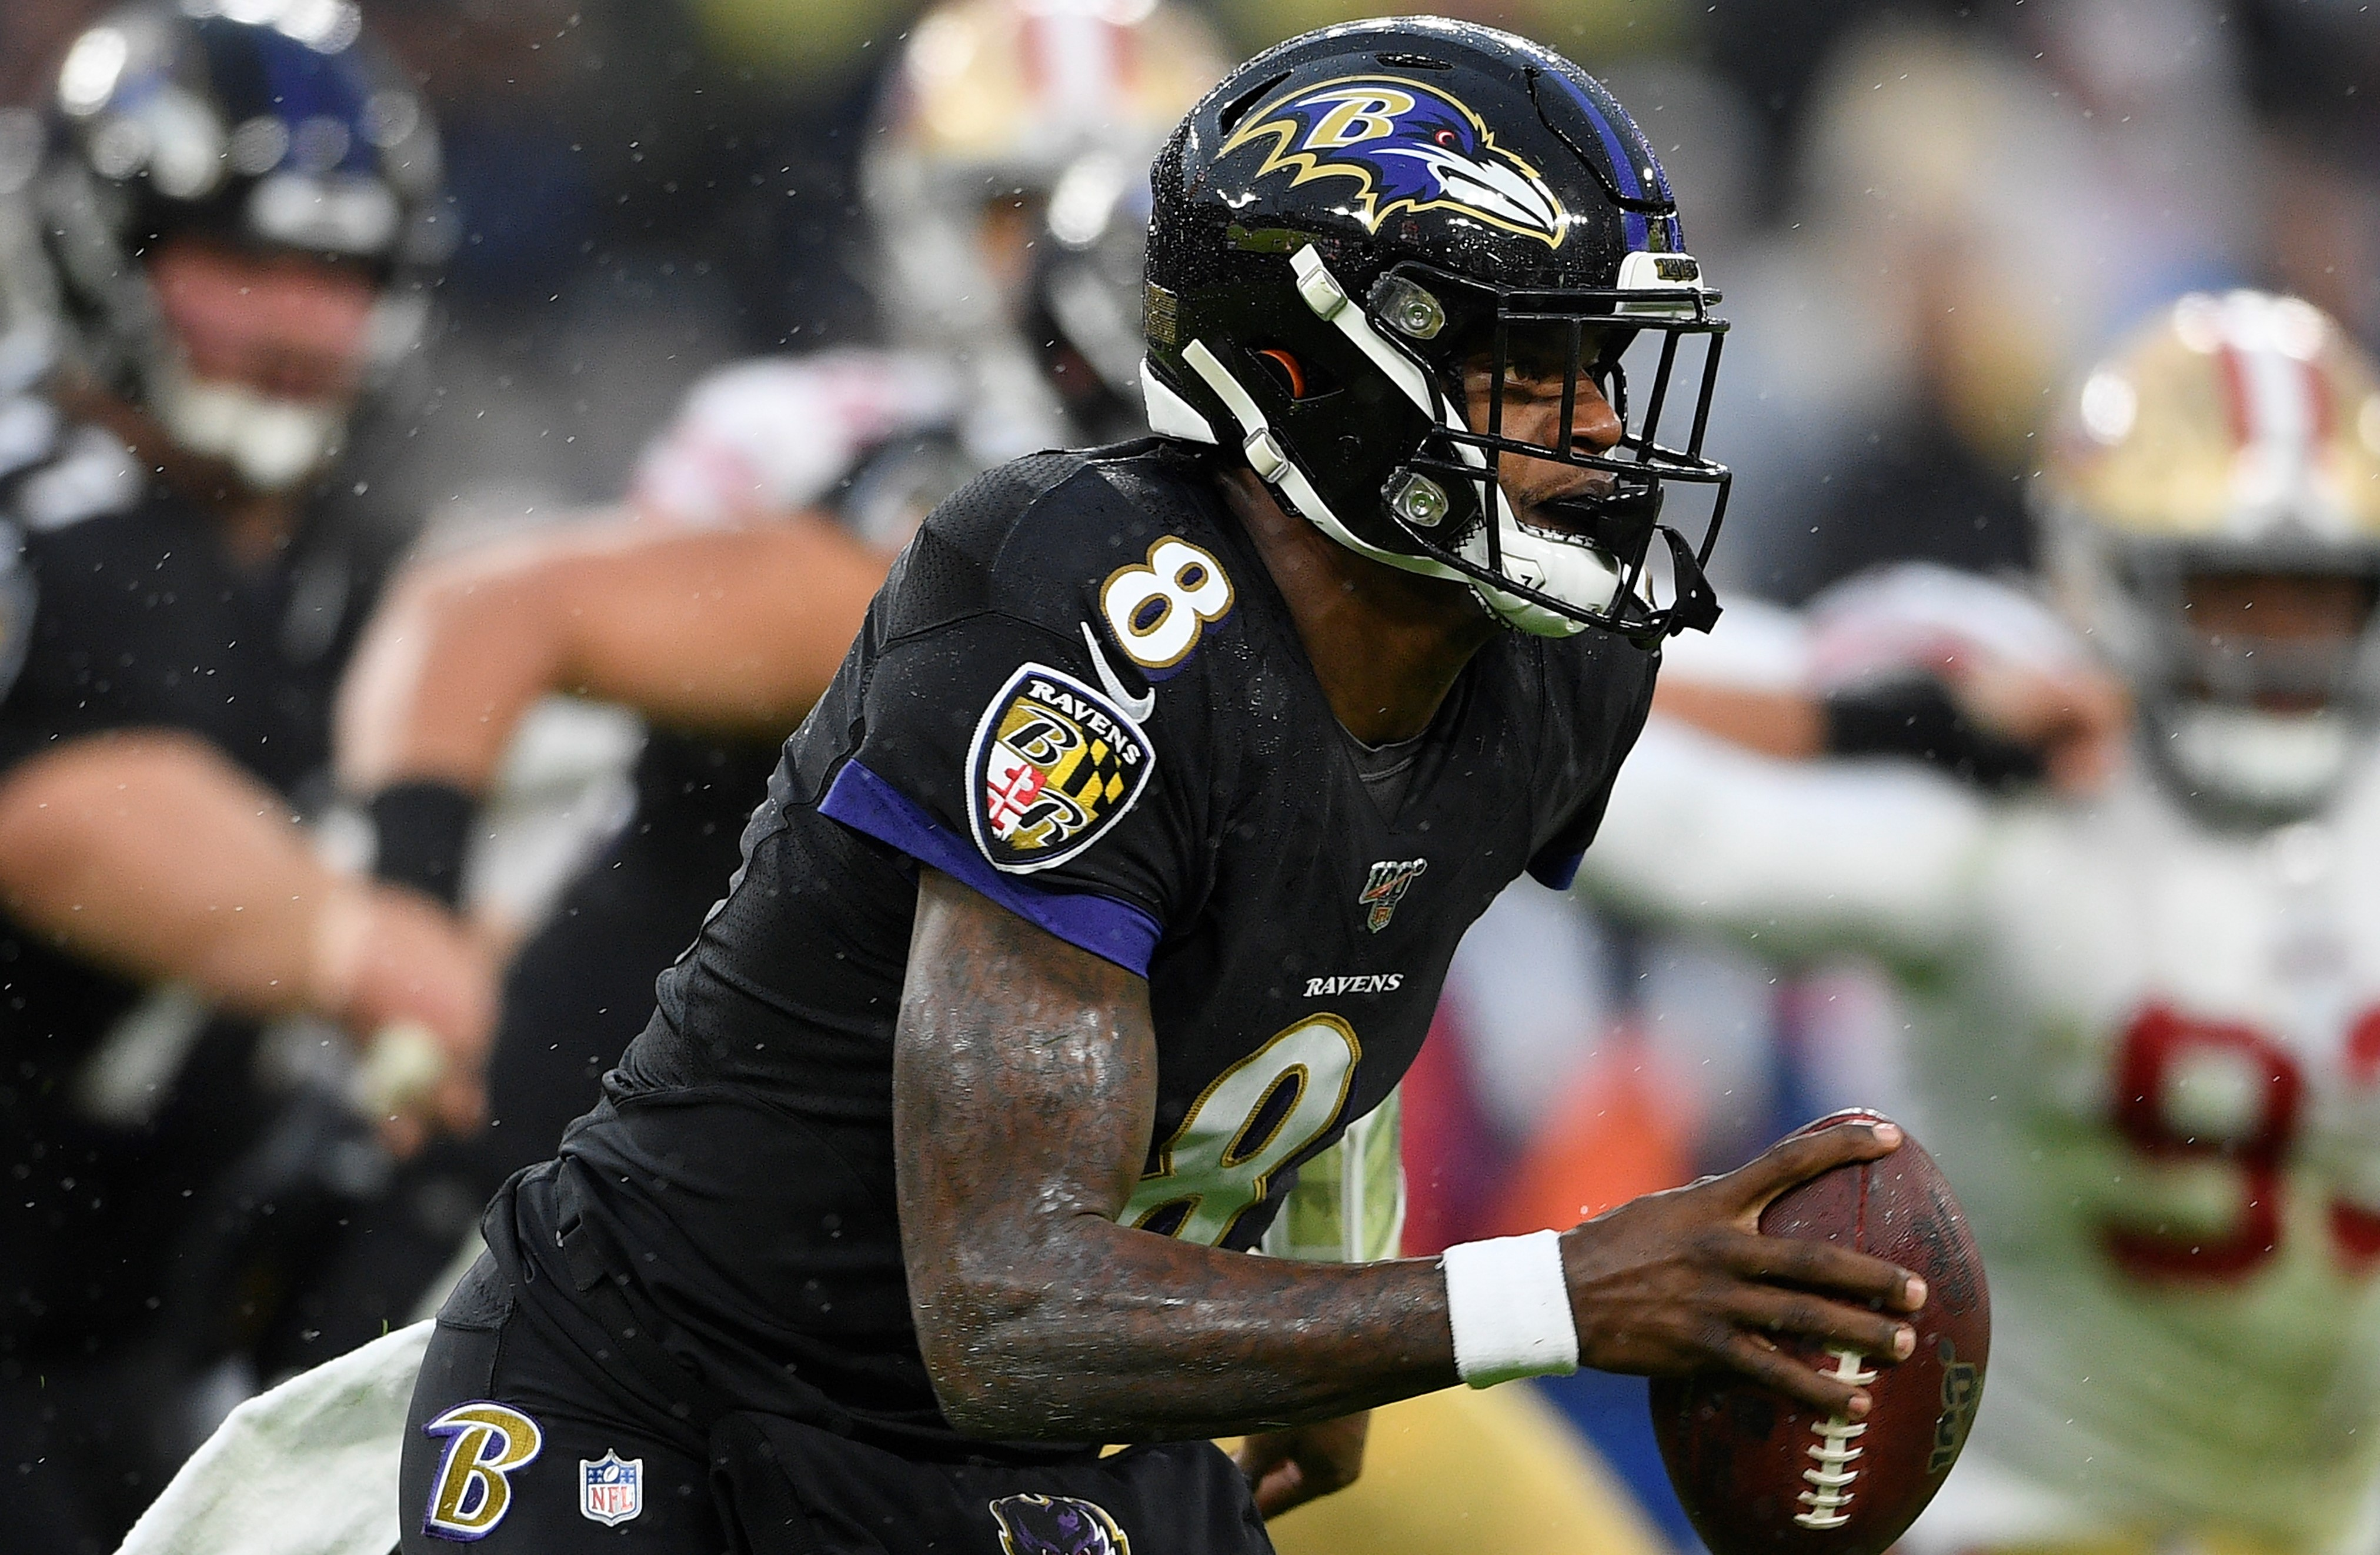 NFL rumors: 49ers broadcaster suspended after saying Ravens' Lamar Jackson's 'dark skin with a dark football' gives him an advantage